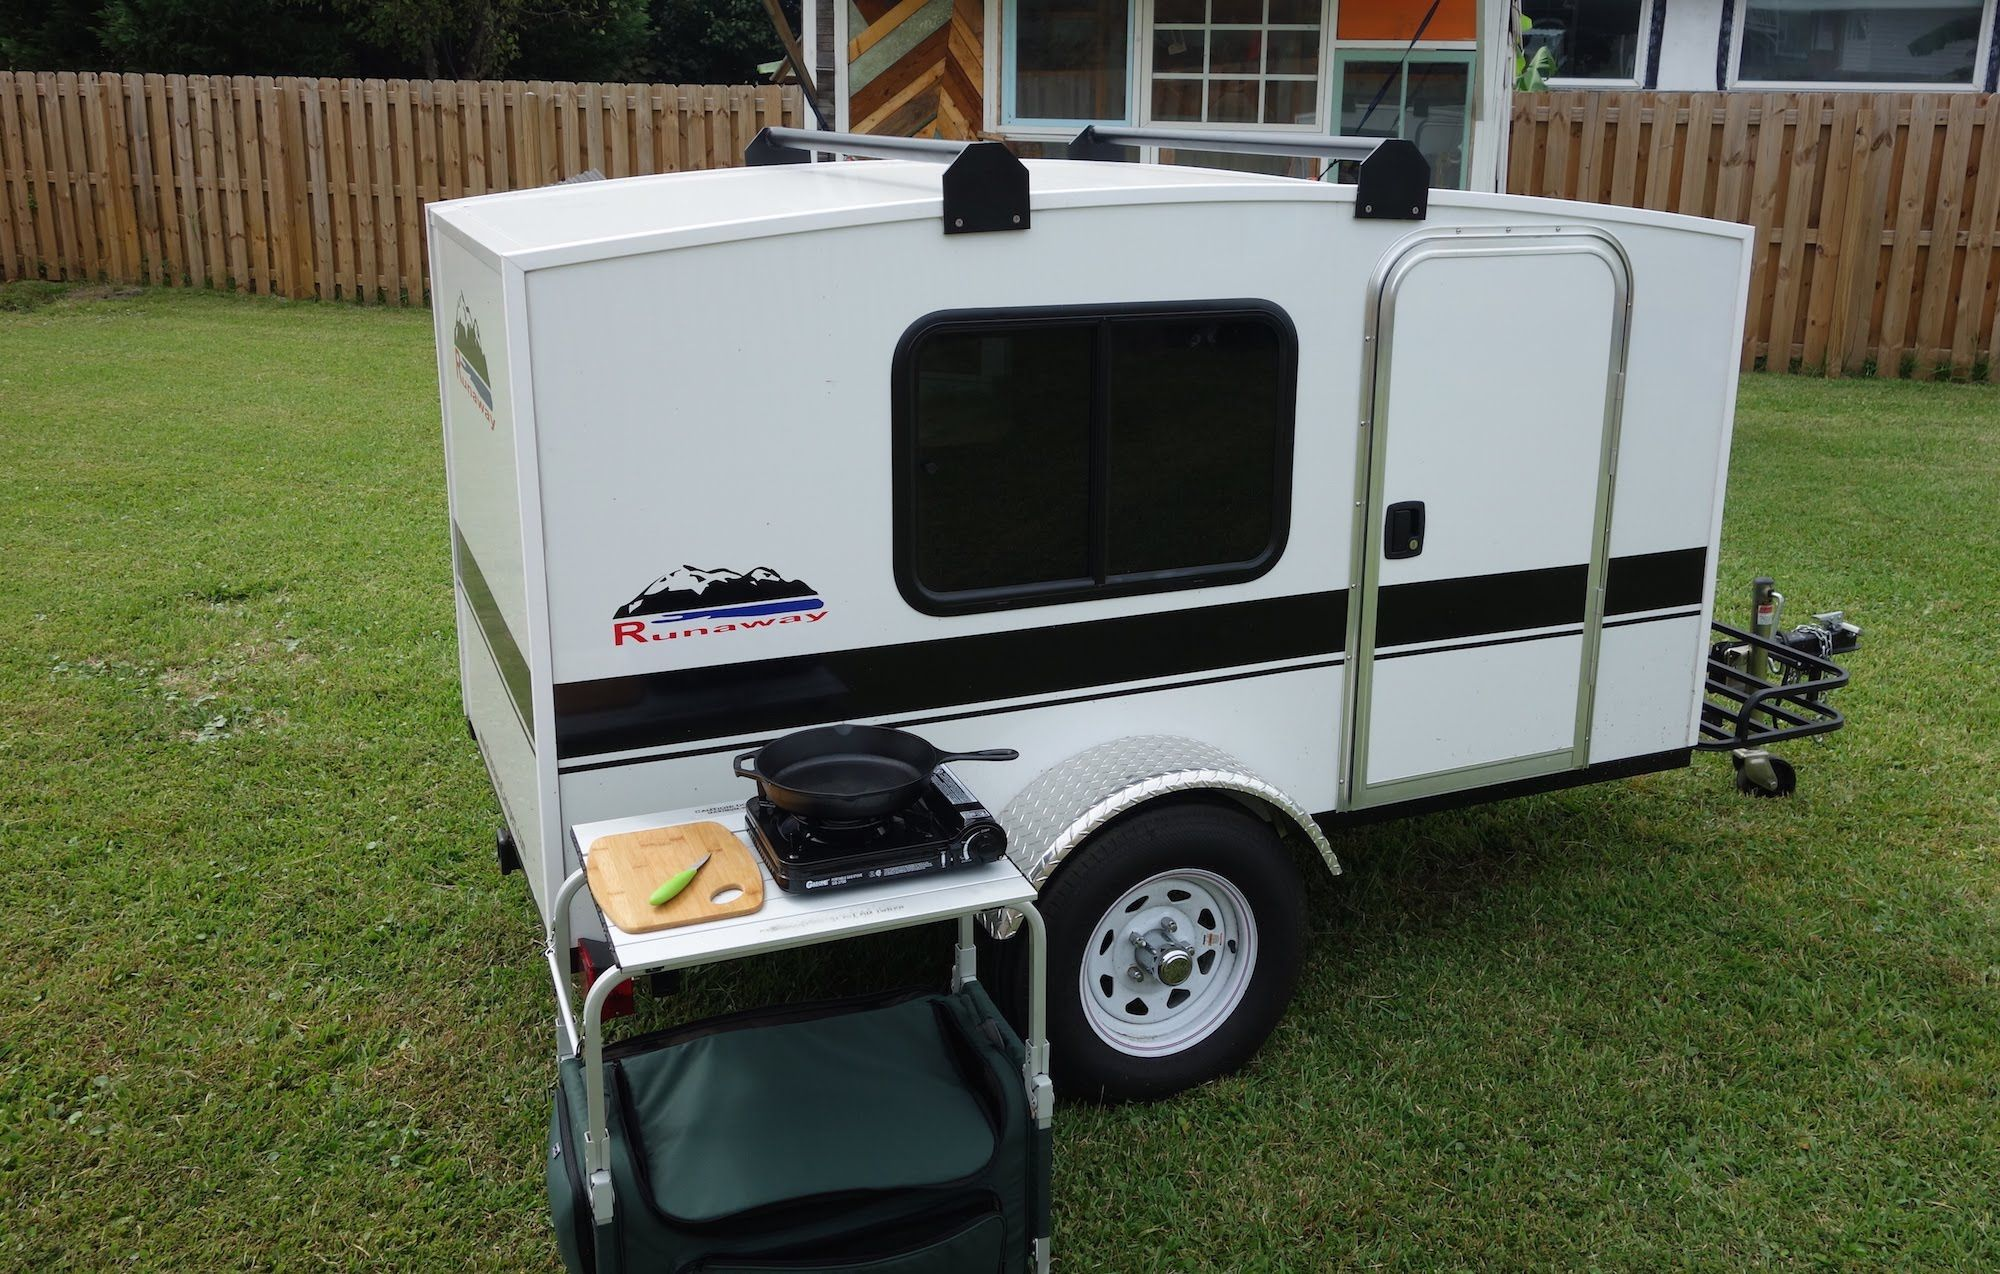 Camper Trailer Kitchen My Micro Camper From Runaway Campers Doesnt Have A Kitchen In It